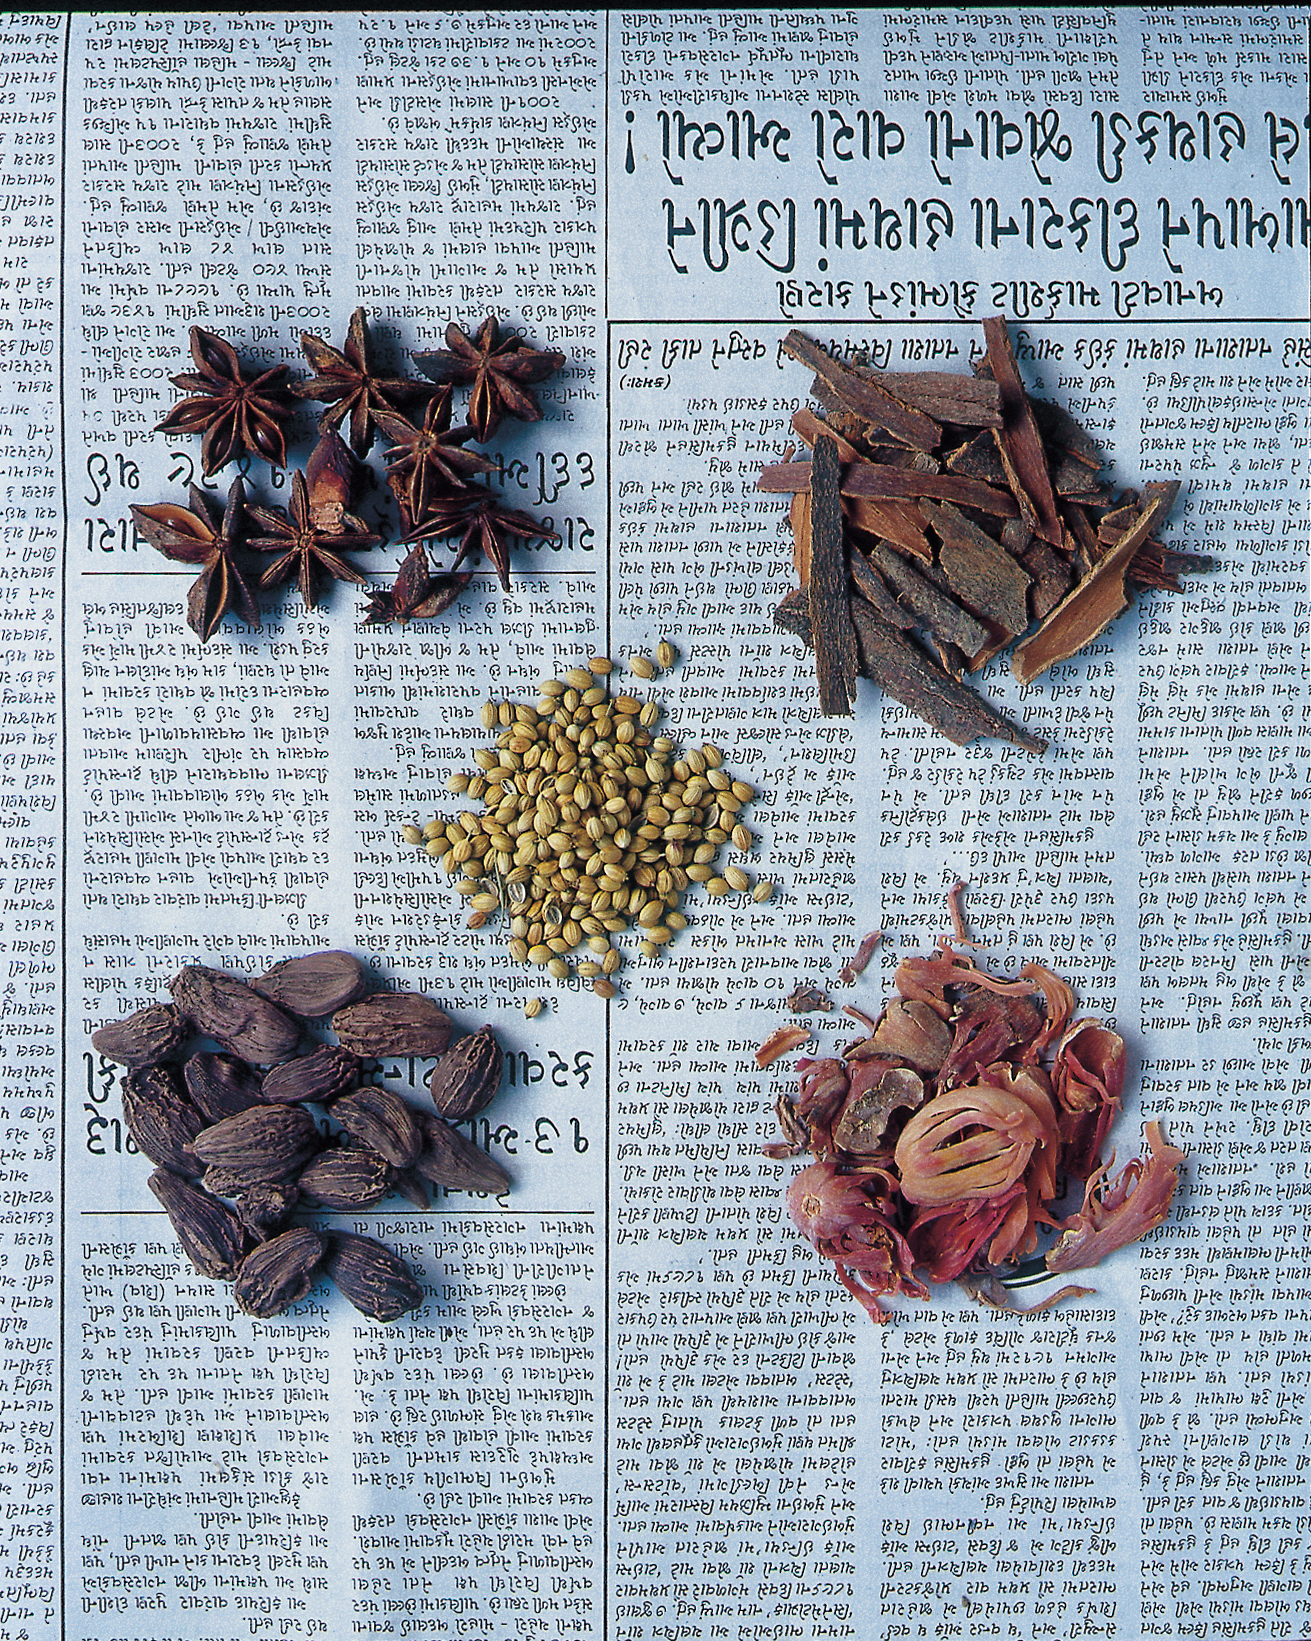 spices on newsprint